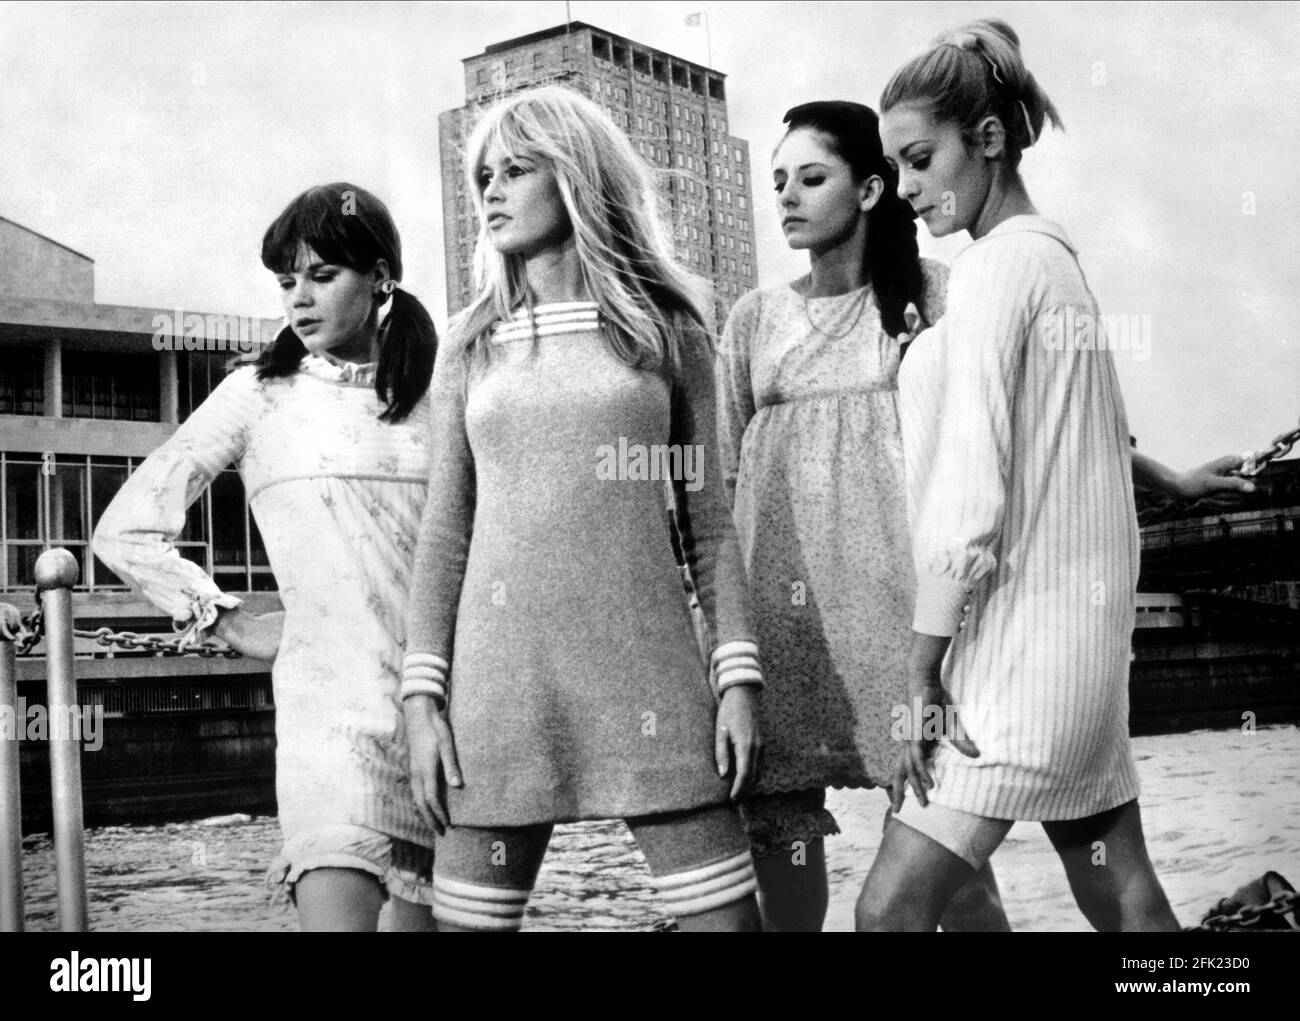 September 1967 High Resolution Stock Photography and Images - Alamy